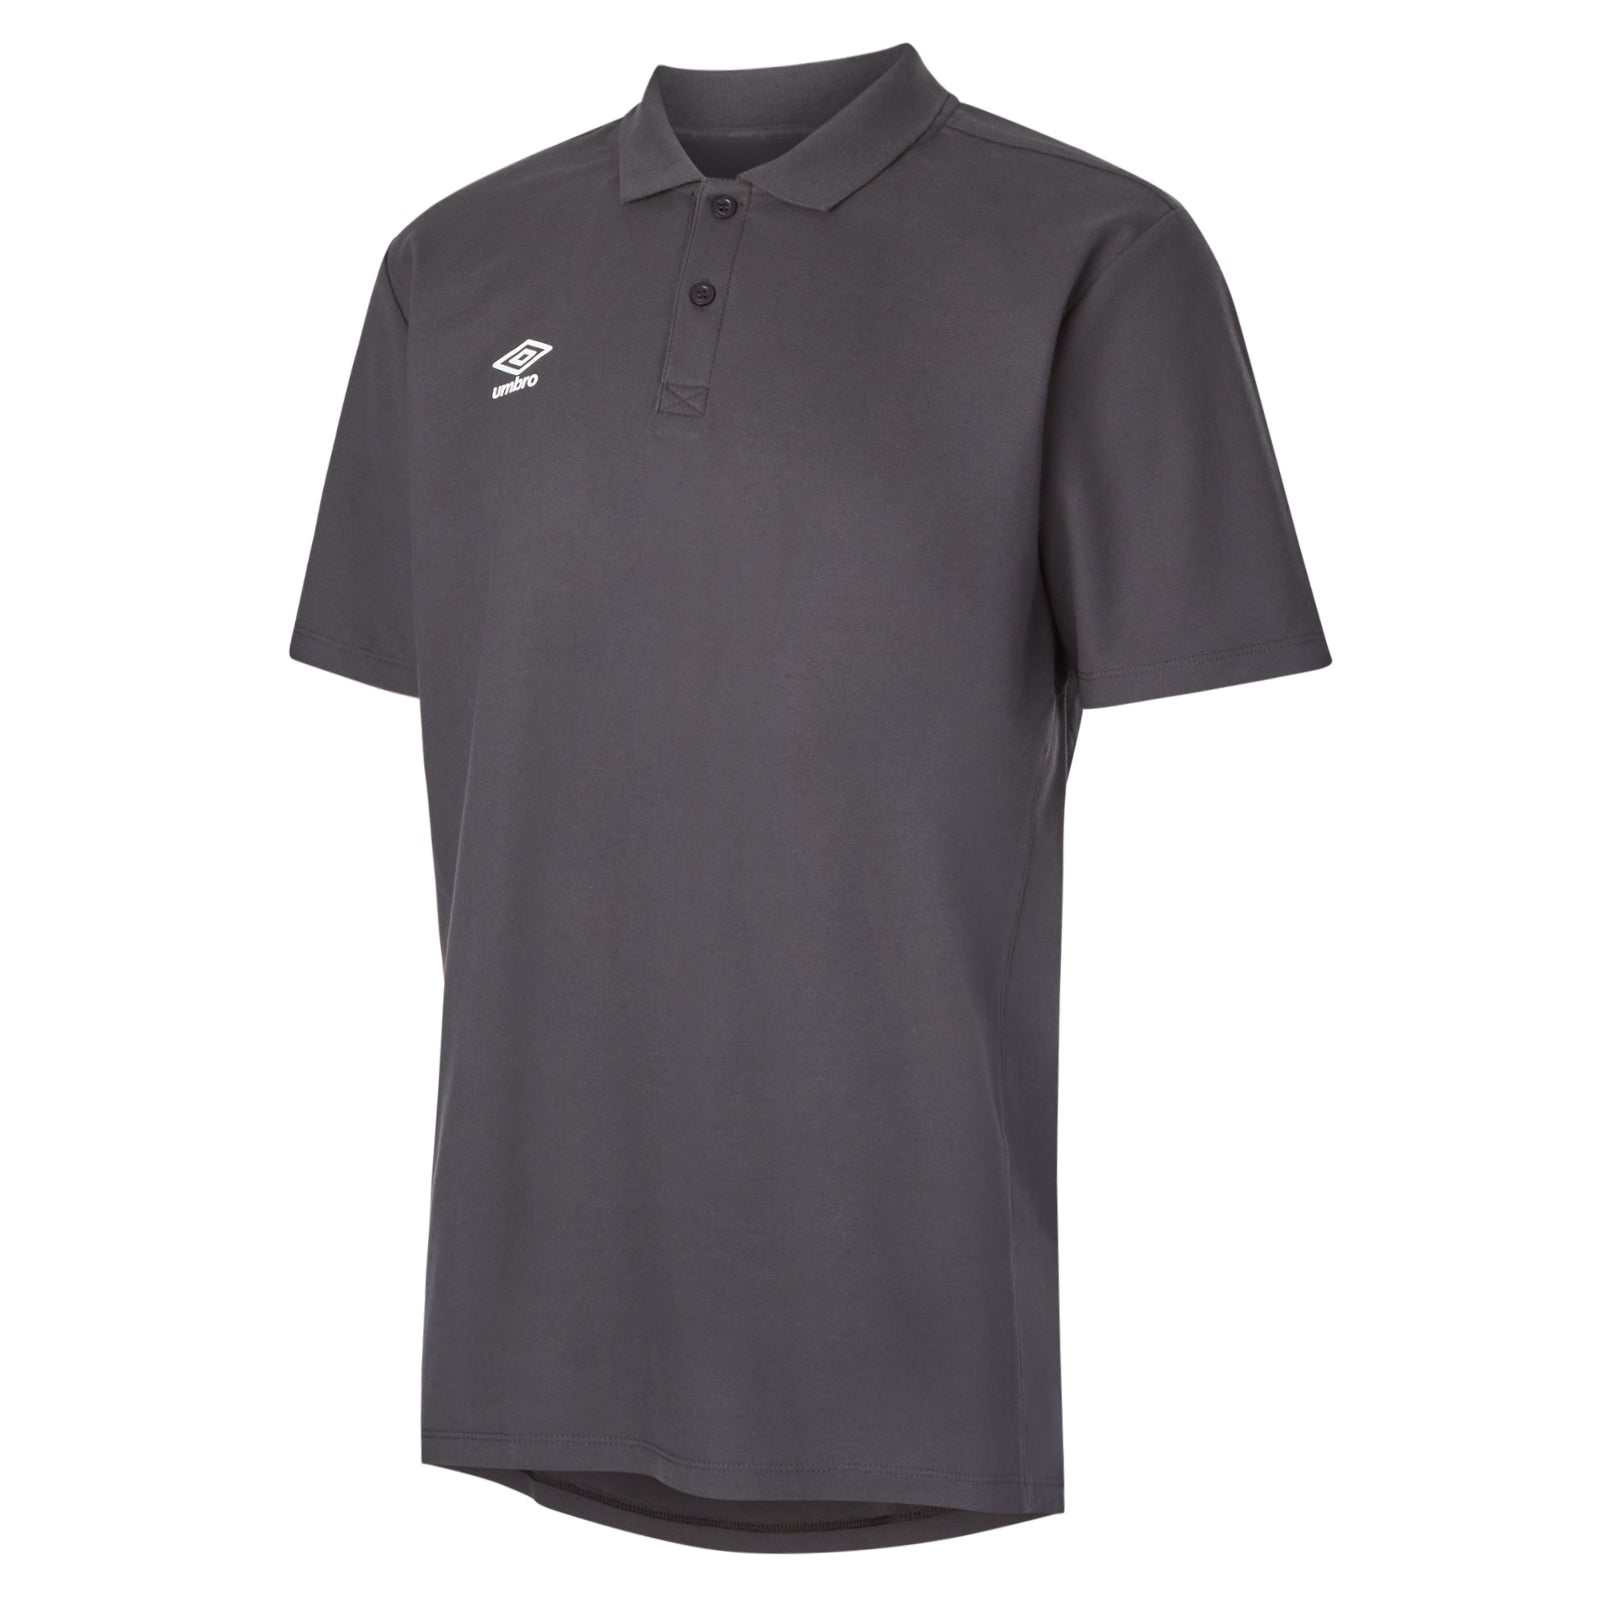 Umbro Club Essential Polo in carbon with white Umbro Diamond logo on right chest